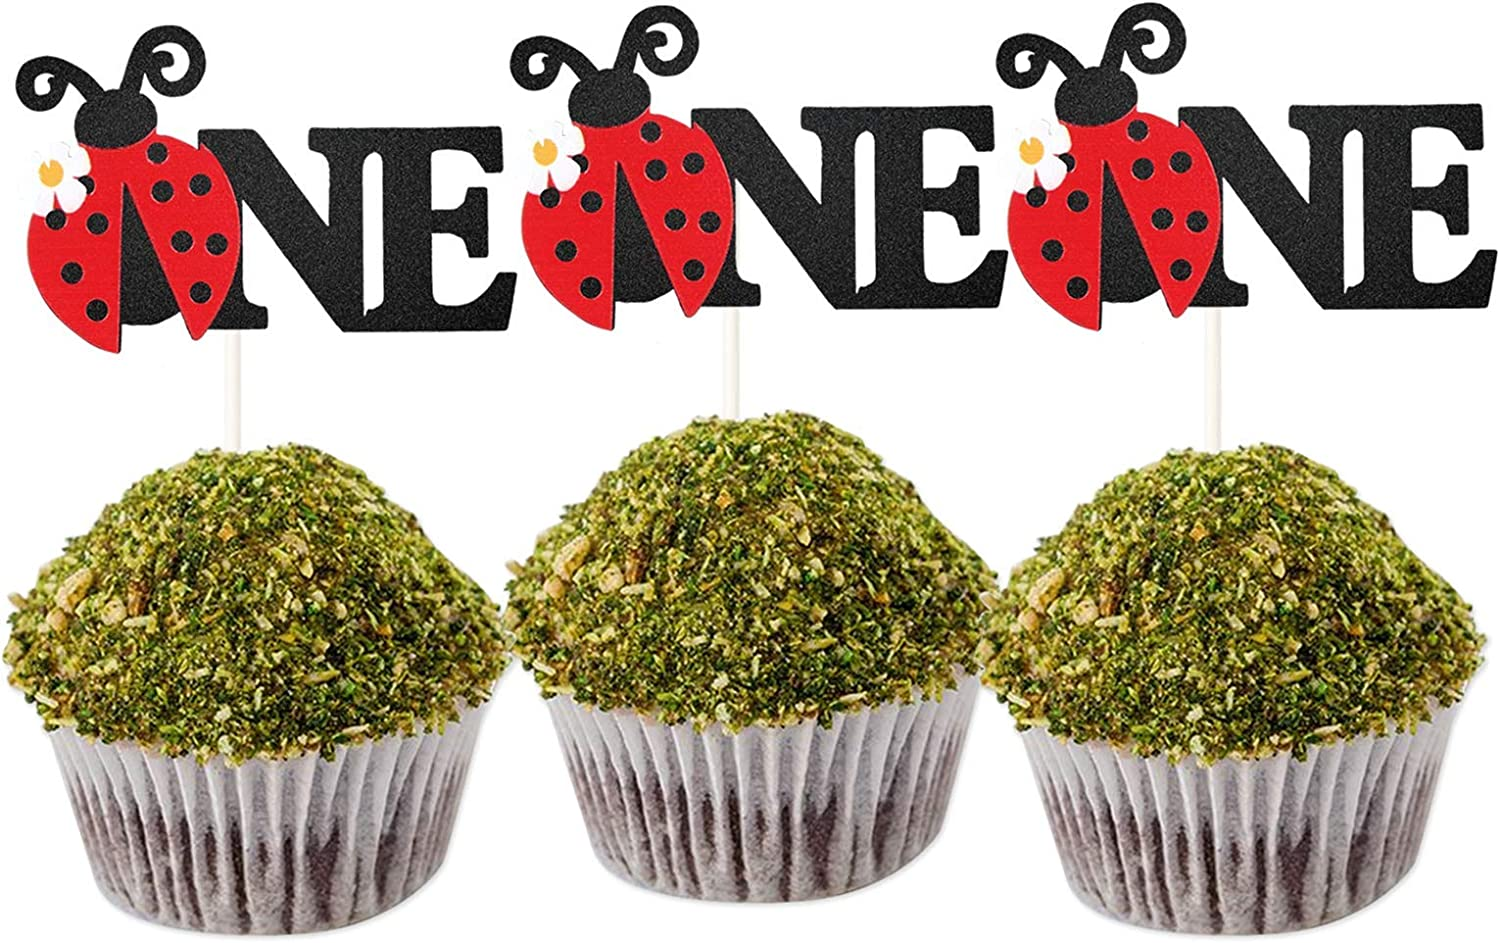 LILIPARTY 24Pcs Glitter Ladybug One Cupcake Toppers Garden Theme Party Dessert Cupcake Picks for 1st Birthday Wedding Party Baby Shower Spring Summer Garden Party Decoration Supplies